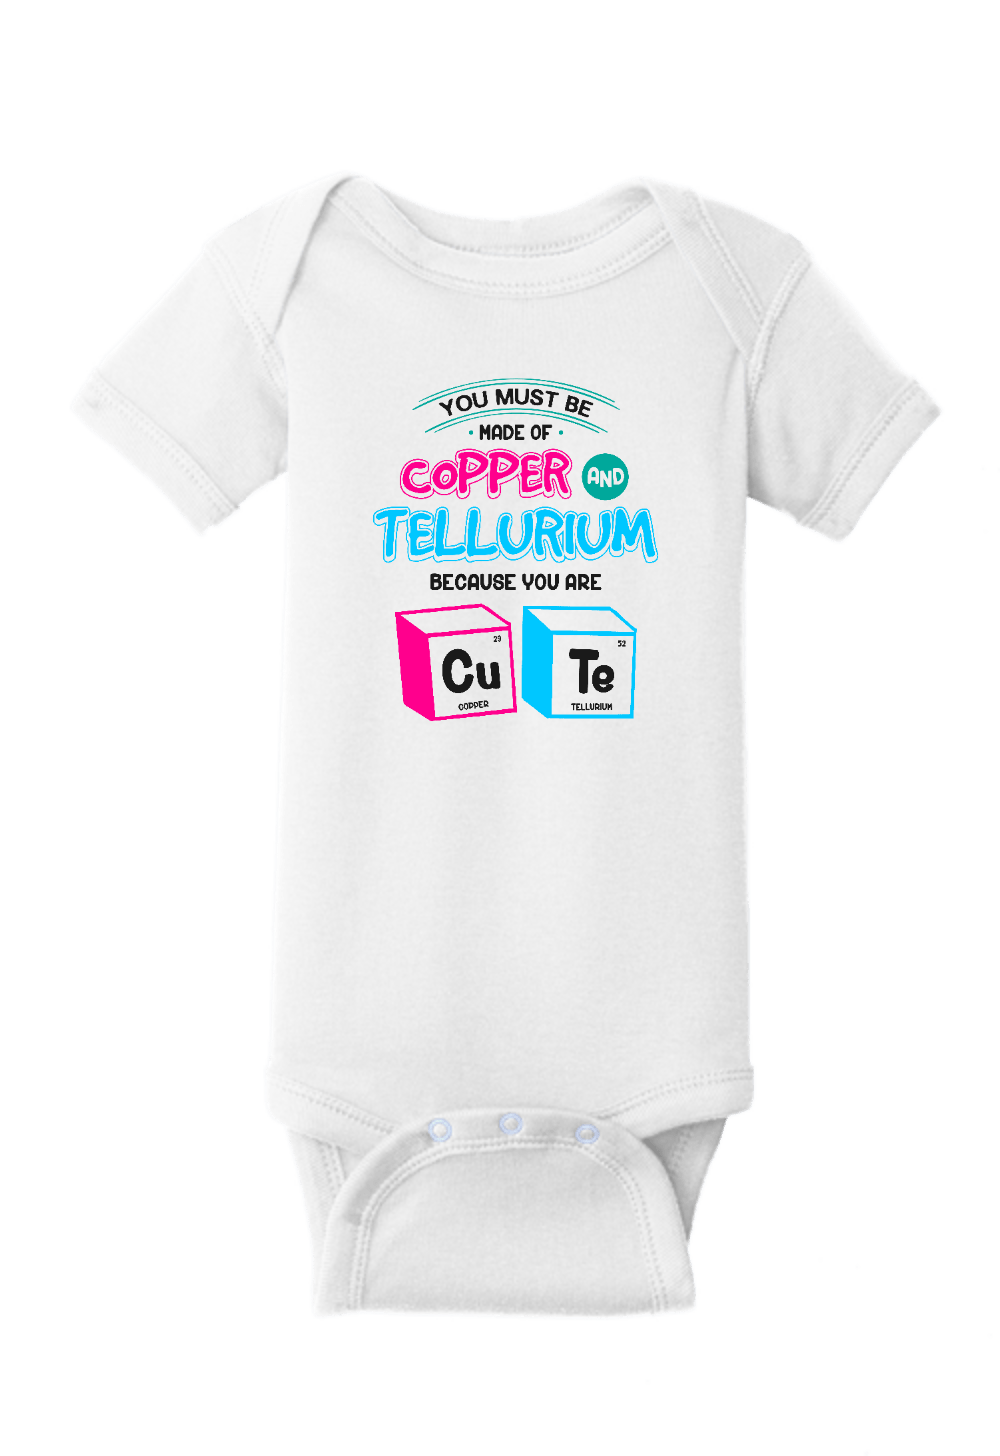 Copper and Tellurium Cute Onesie